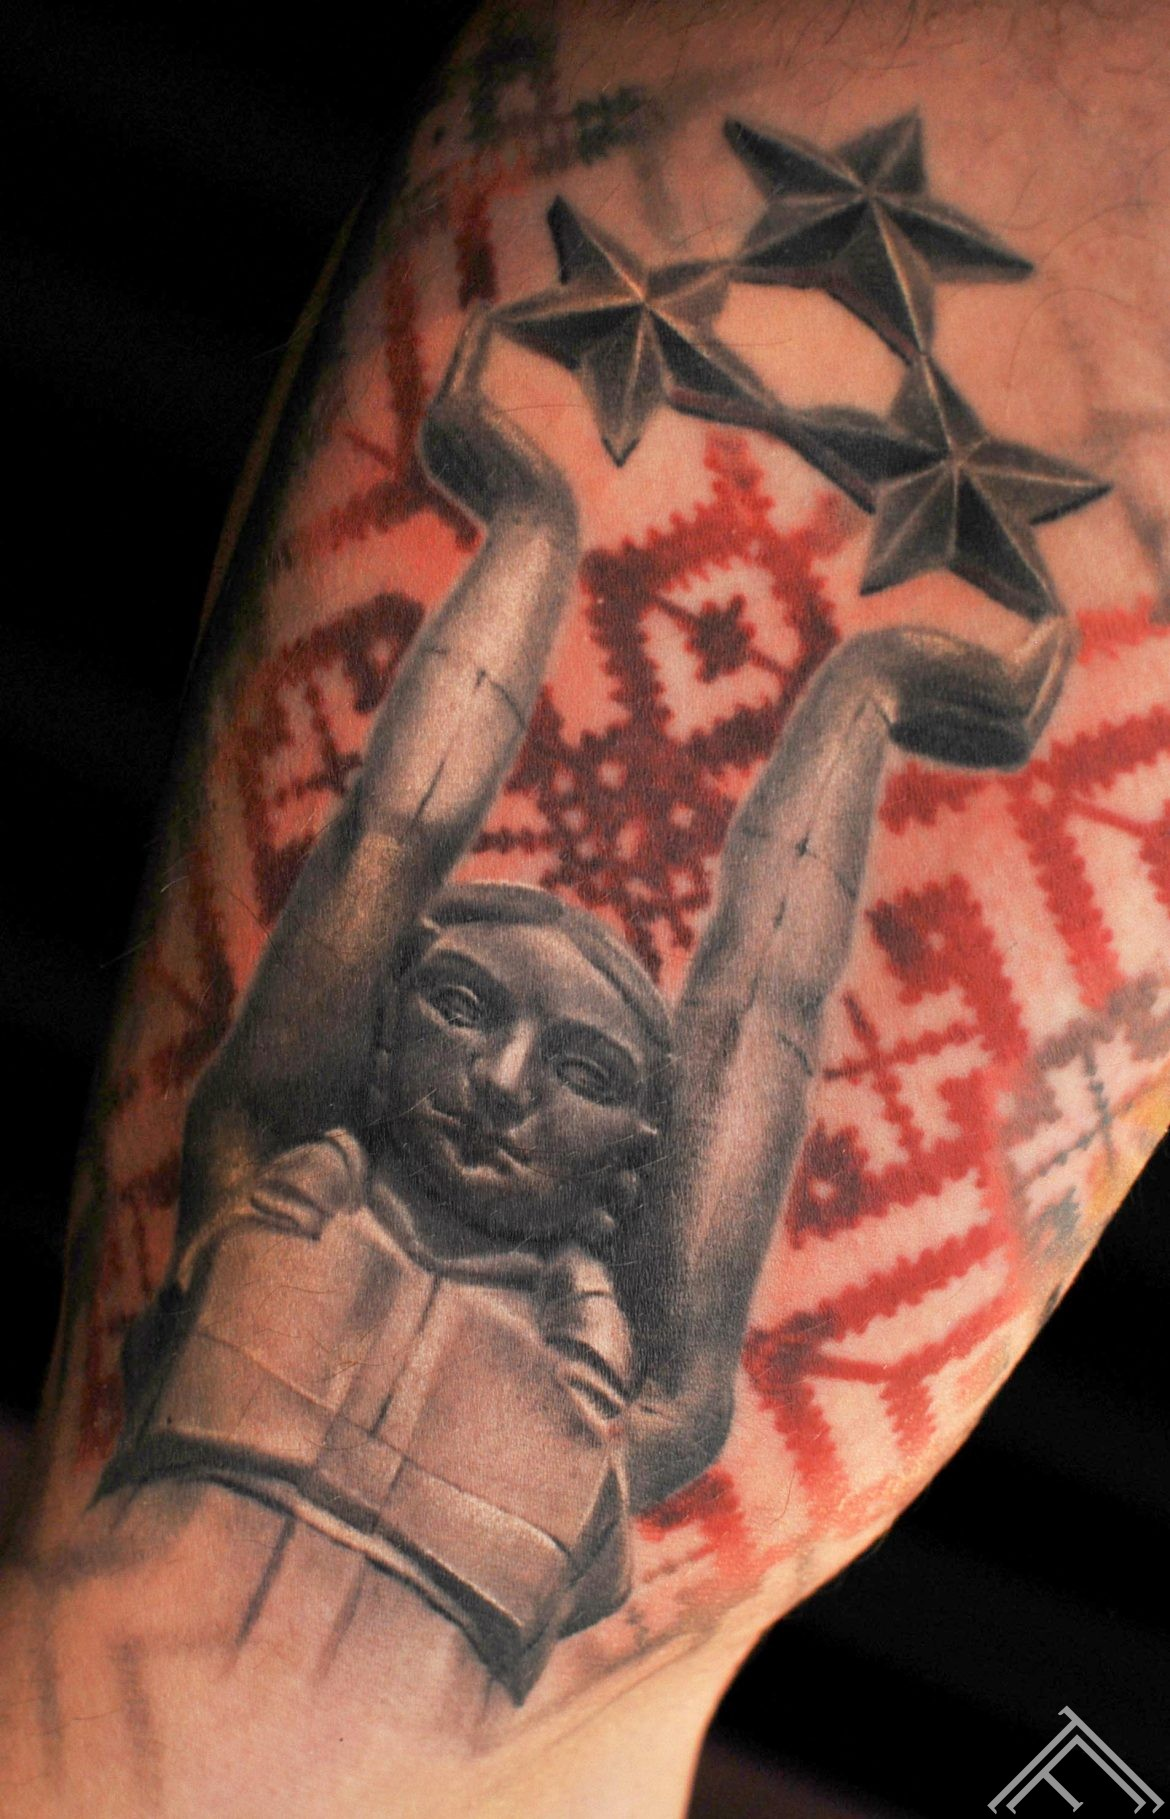 milda_riga_tattoo_monument_freedom_sculpture_culture_tattoofrequency_rigatattoo_latvia_latvija